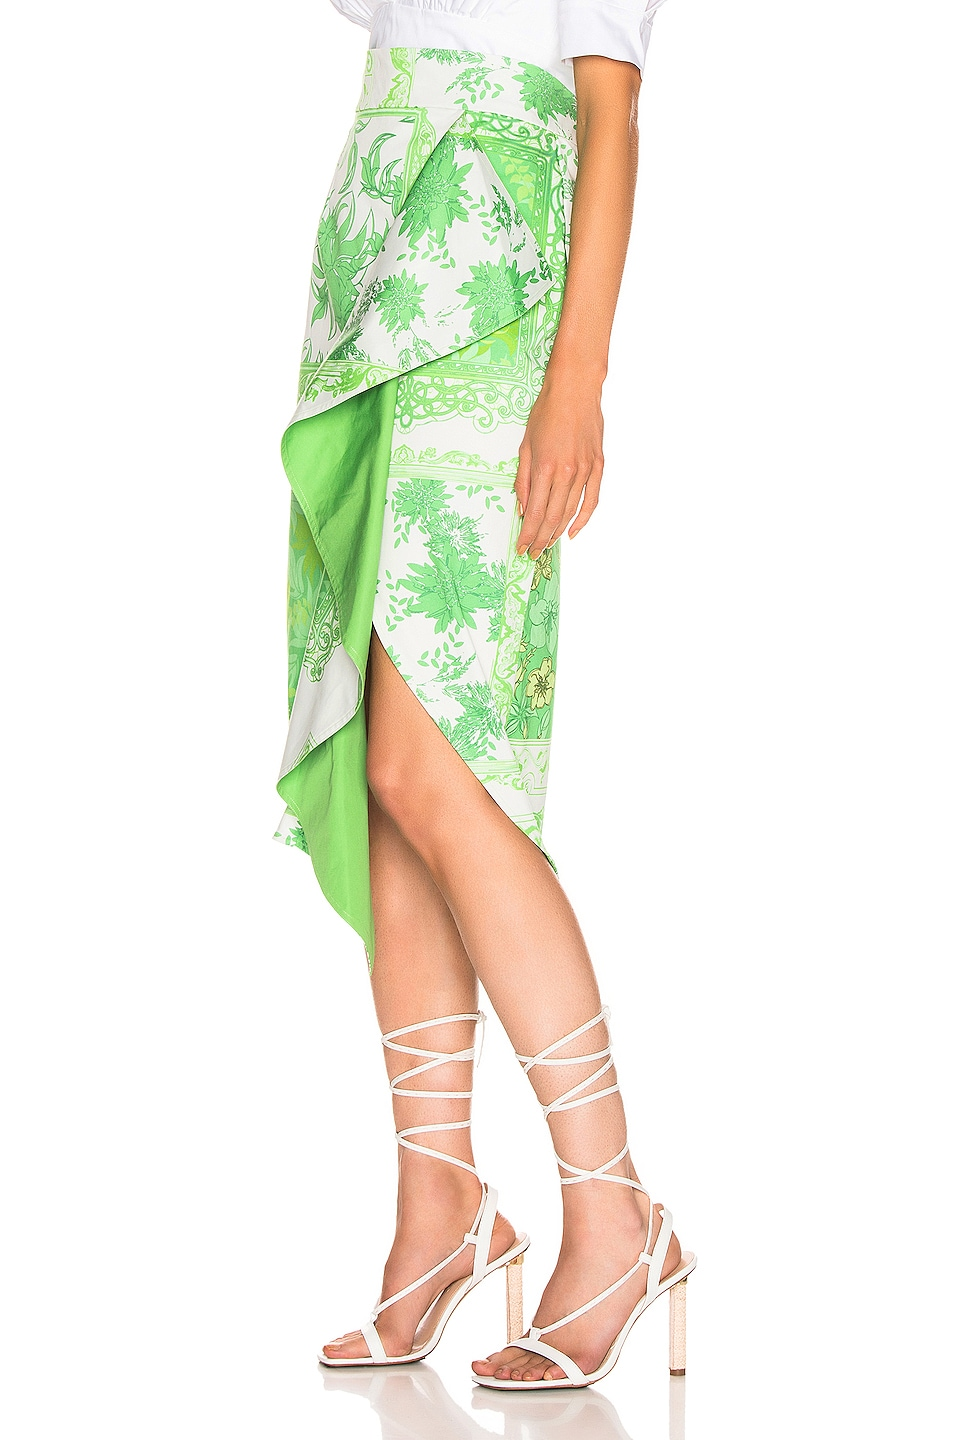 Image 3 of SILVIA TCHERASSI Waterloo Skirt in Green Bandana